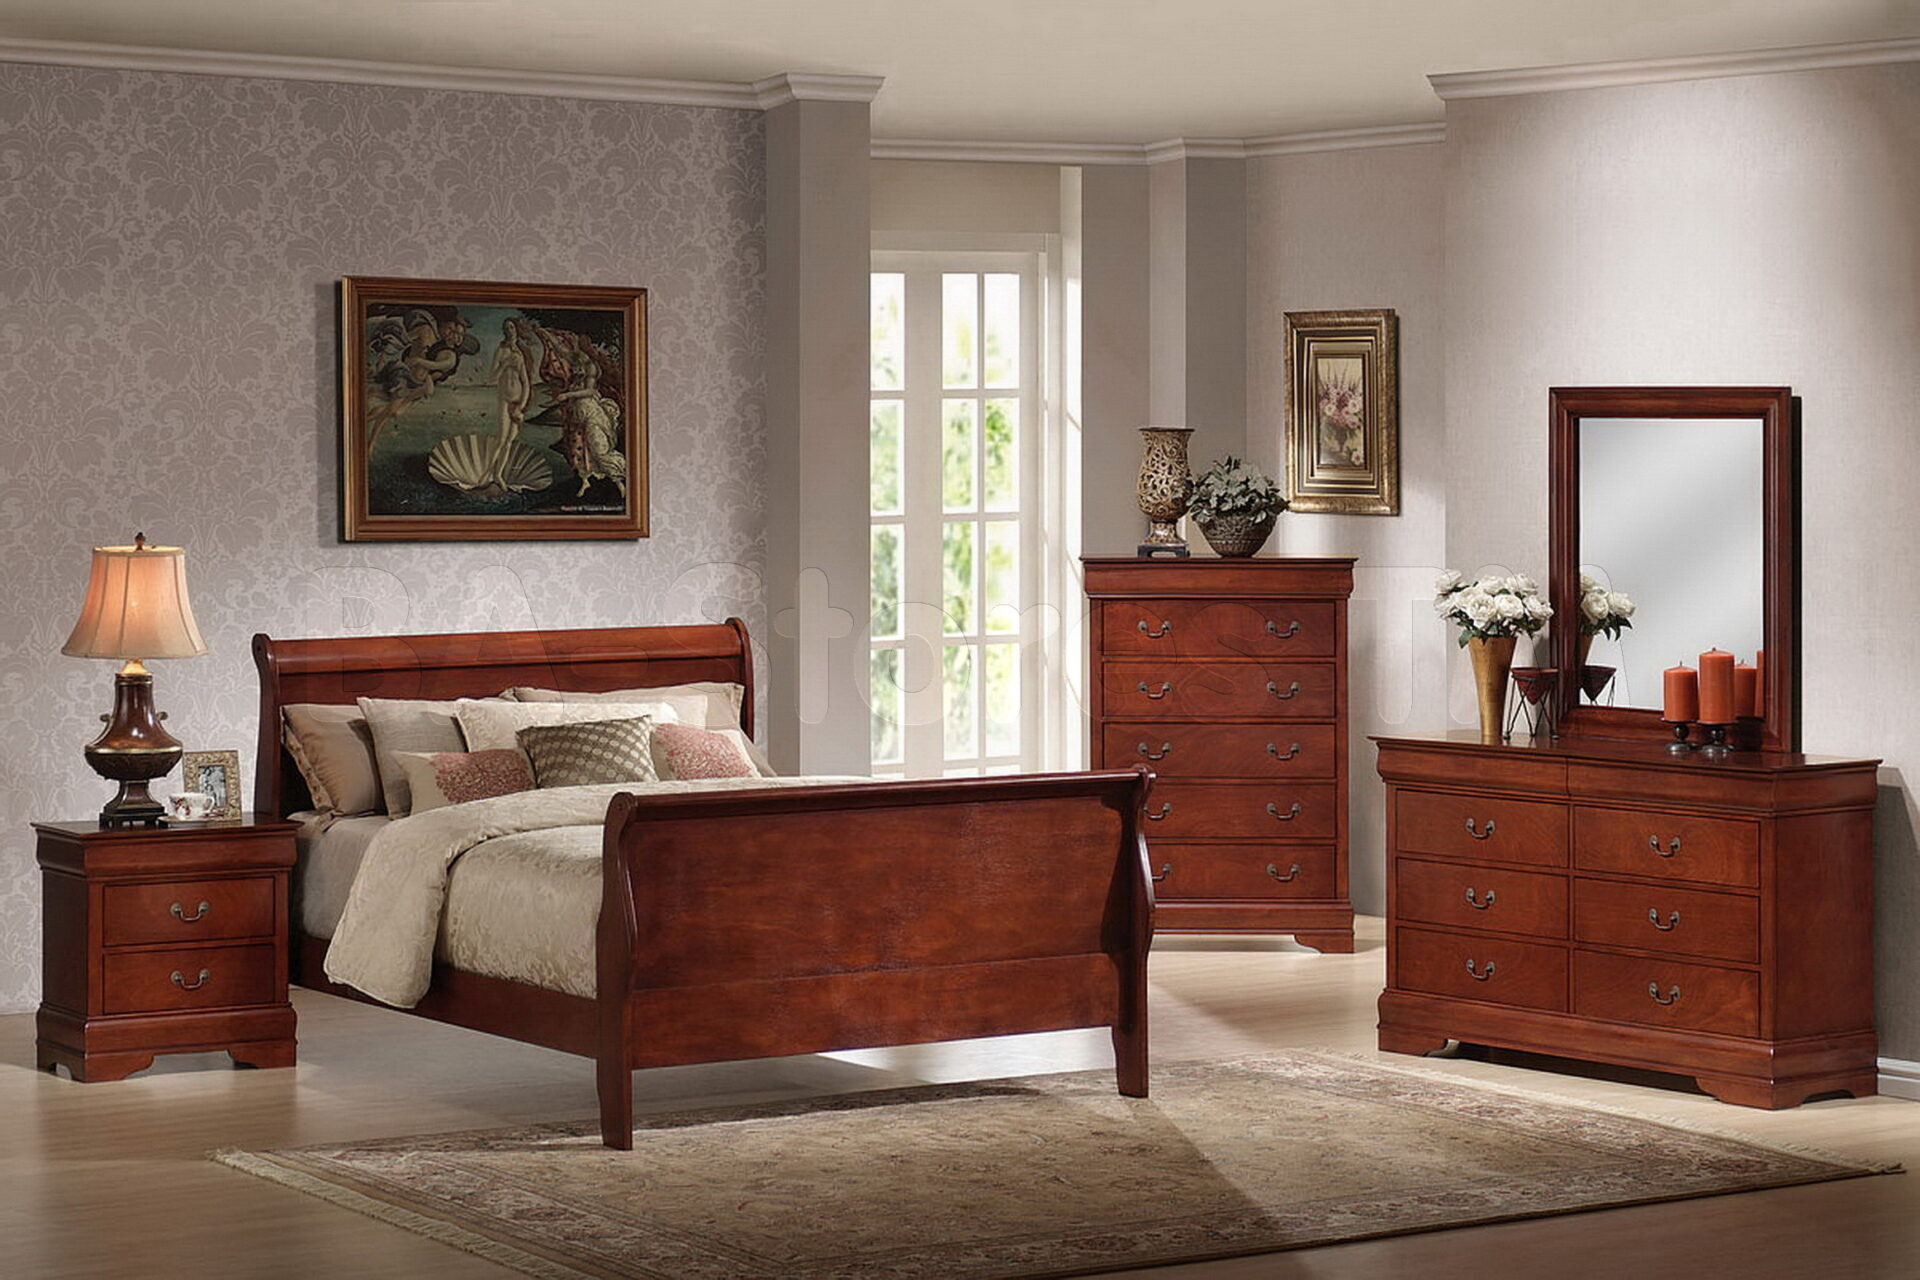 Wooden furniture tips pricing shopping Wooden furniture design for bedroom